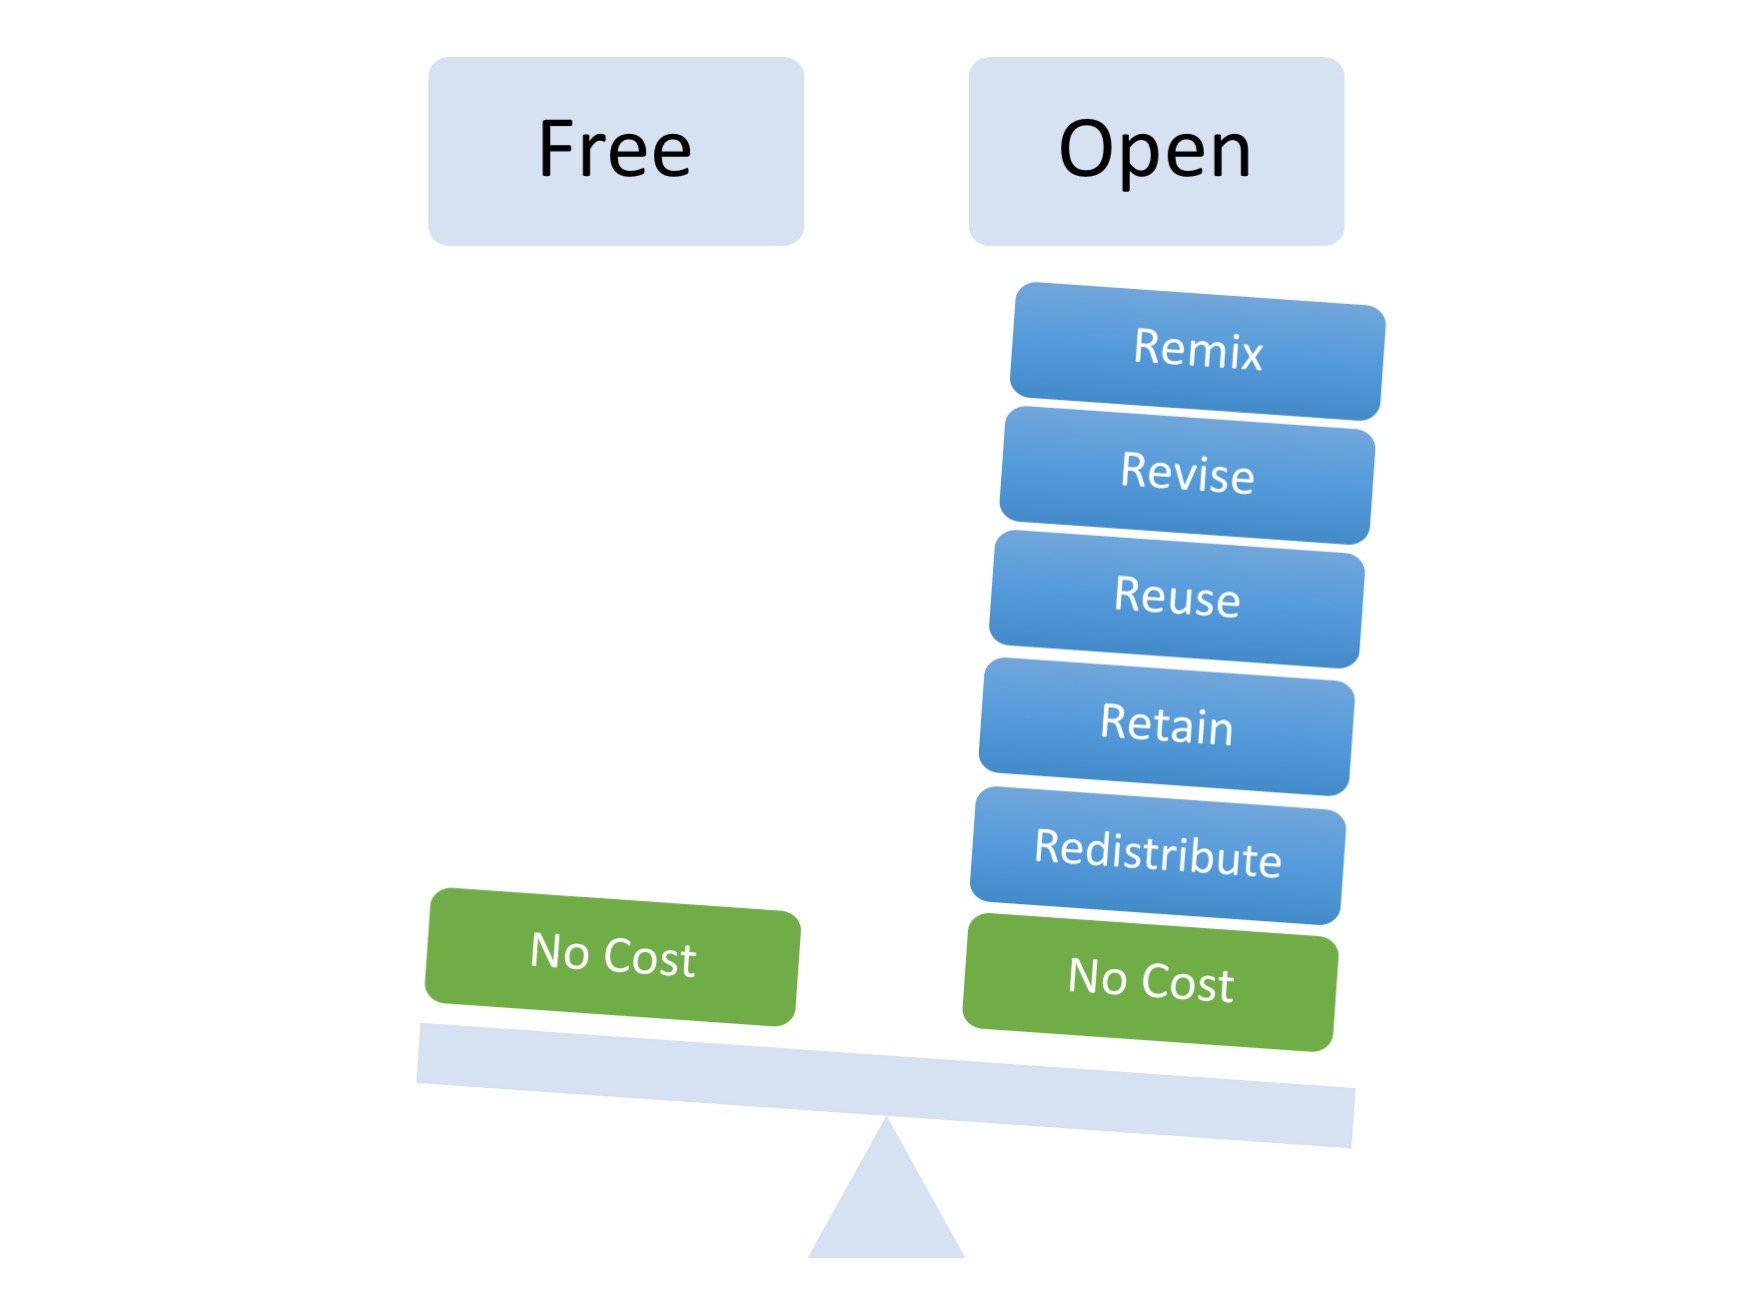 Elements of free resources vs open resources.